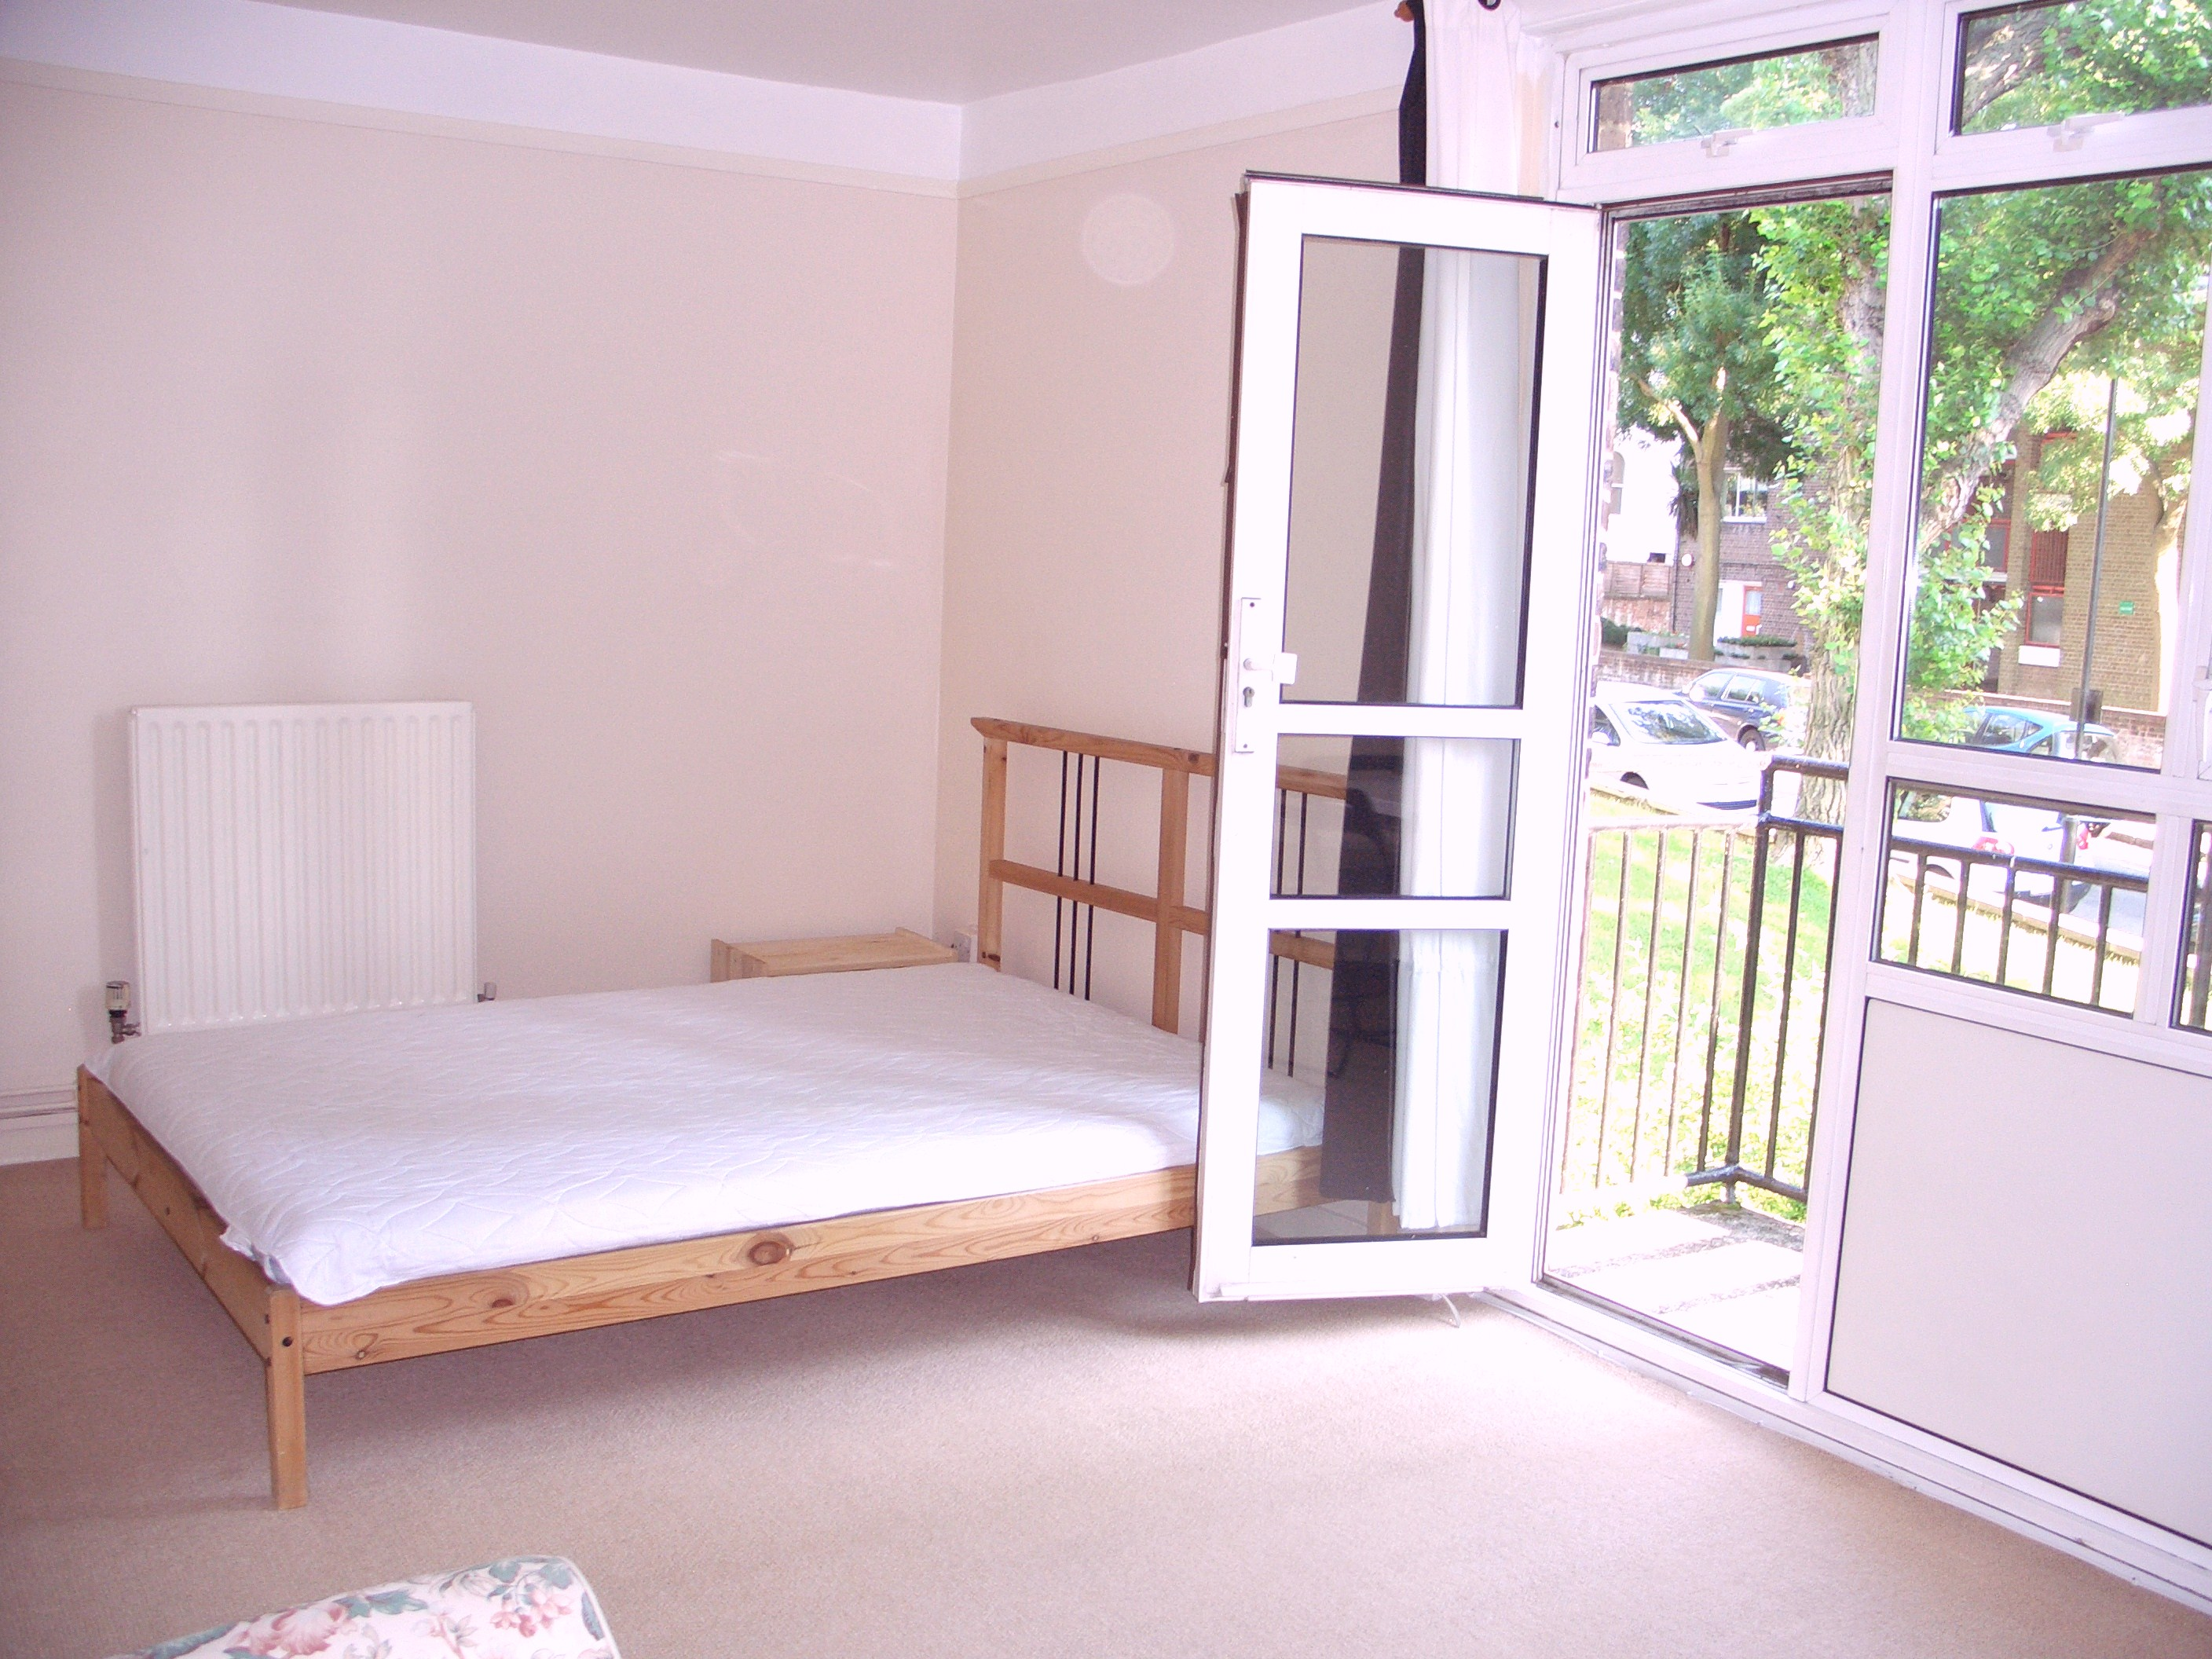 studio apartments with separate bedrooms pictures to pin suite with 2 separate bedrooms and kitchenette 16